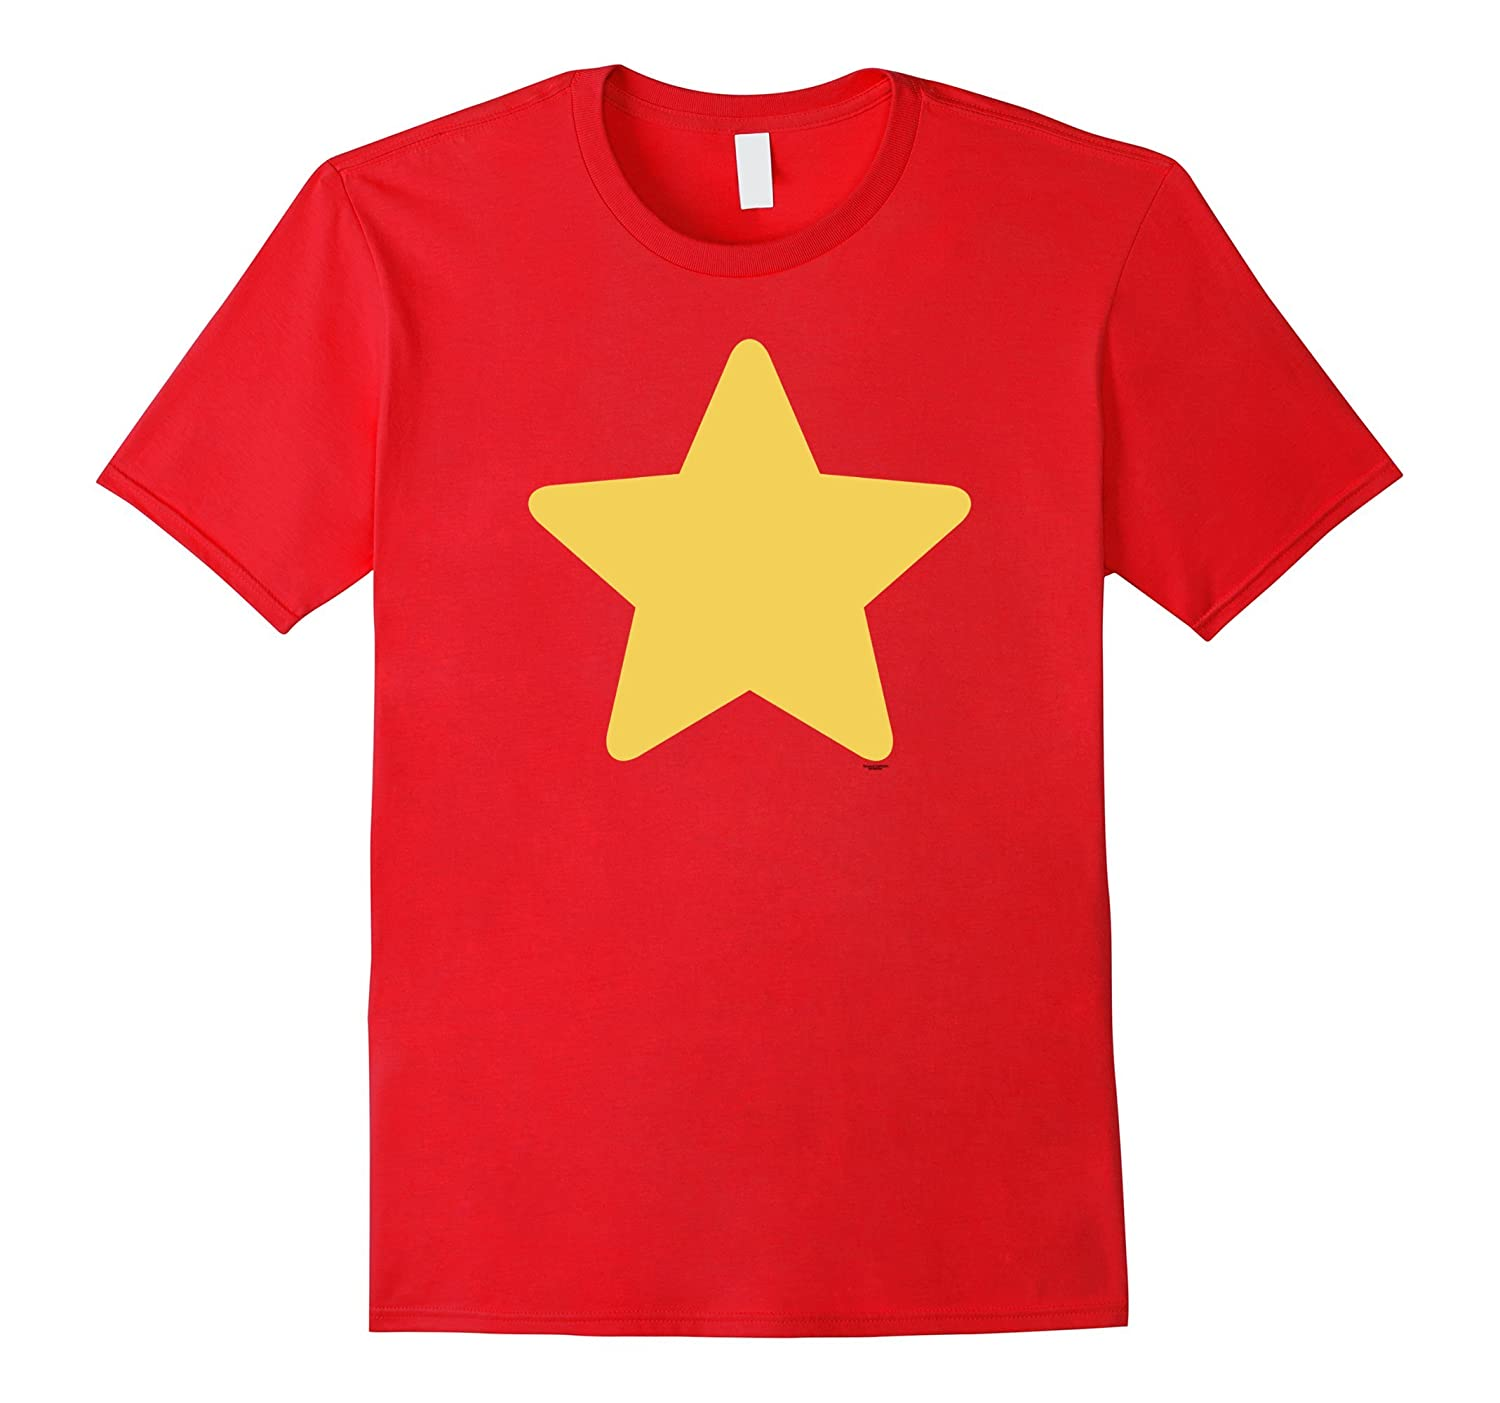 Men's Steven Universe Star Symbol Graphic Tee, Men T-Shirt-BN